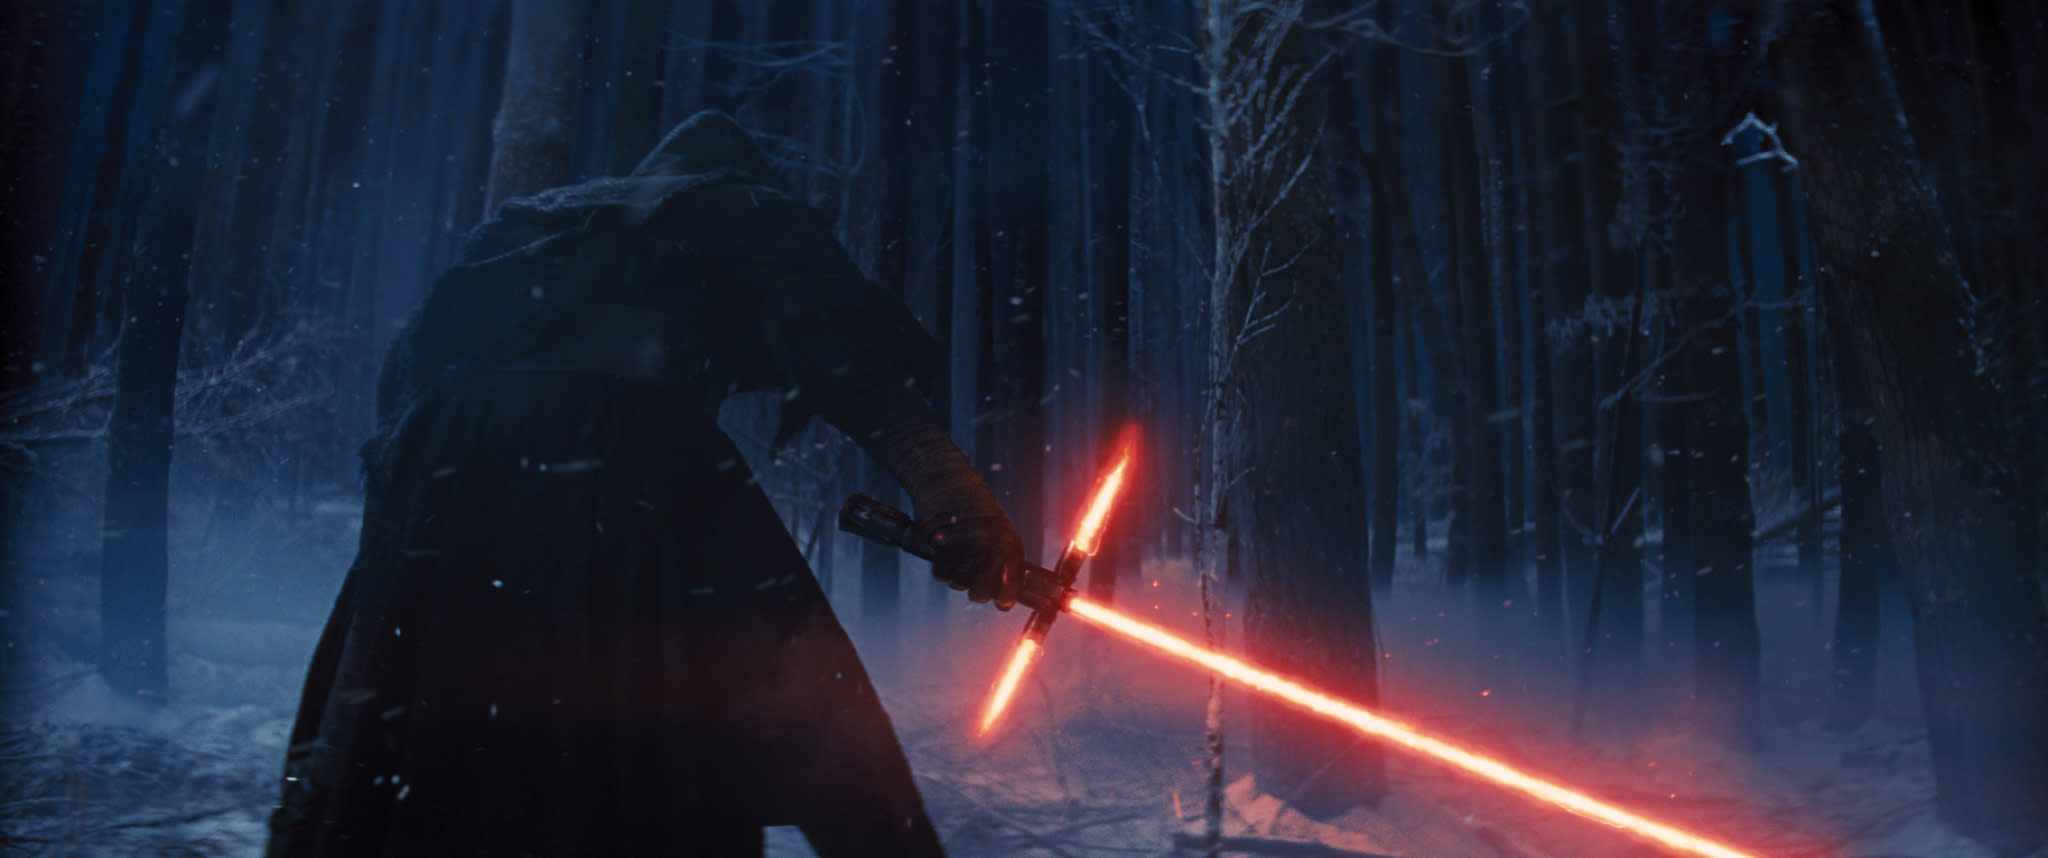 Check out these Star Wars fan films to feel the Force